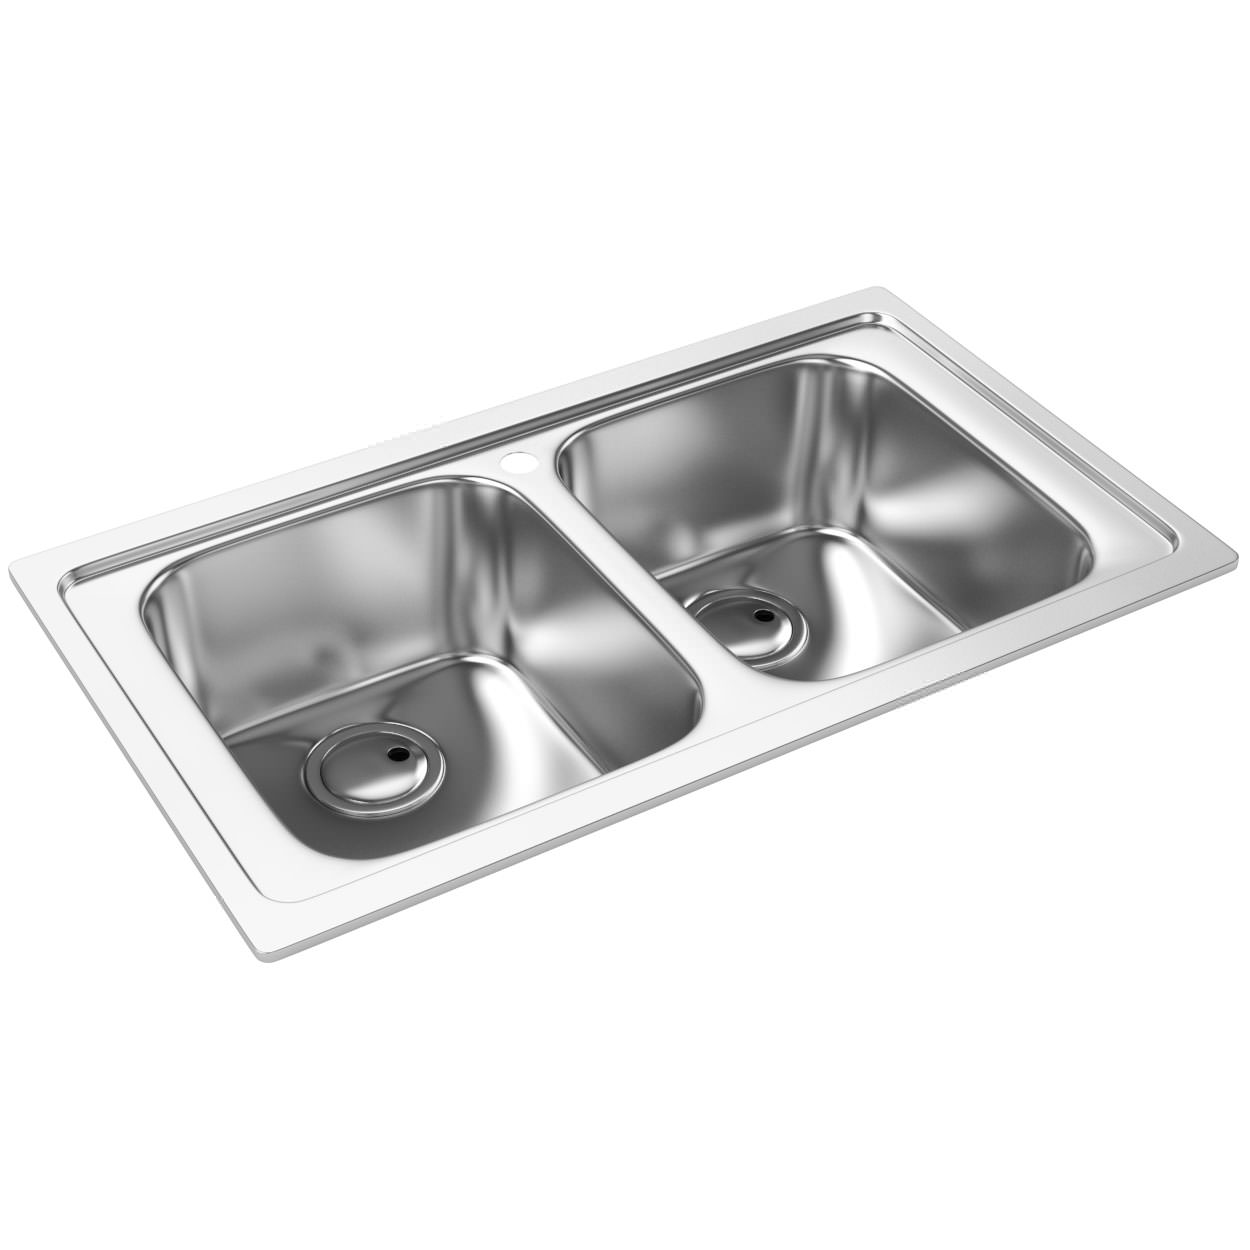 Abode Kode Double Bowl Brushed Stainless Steel Inset